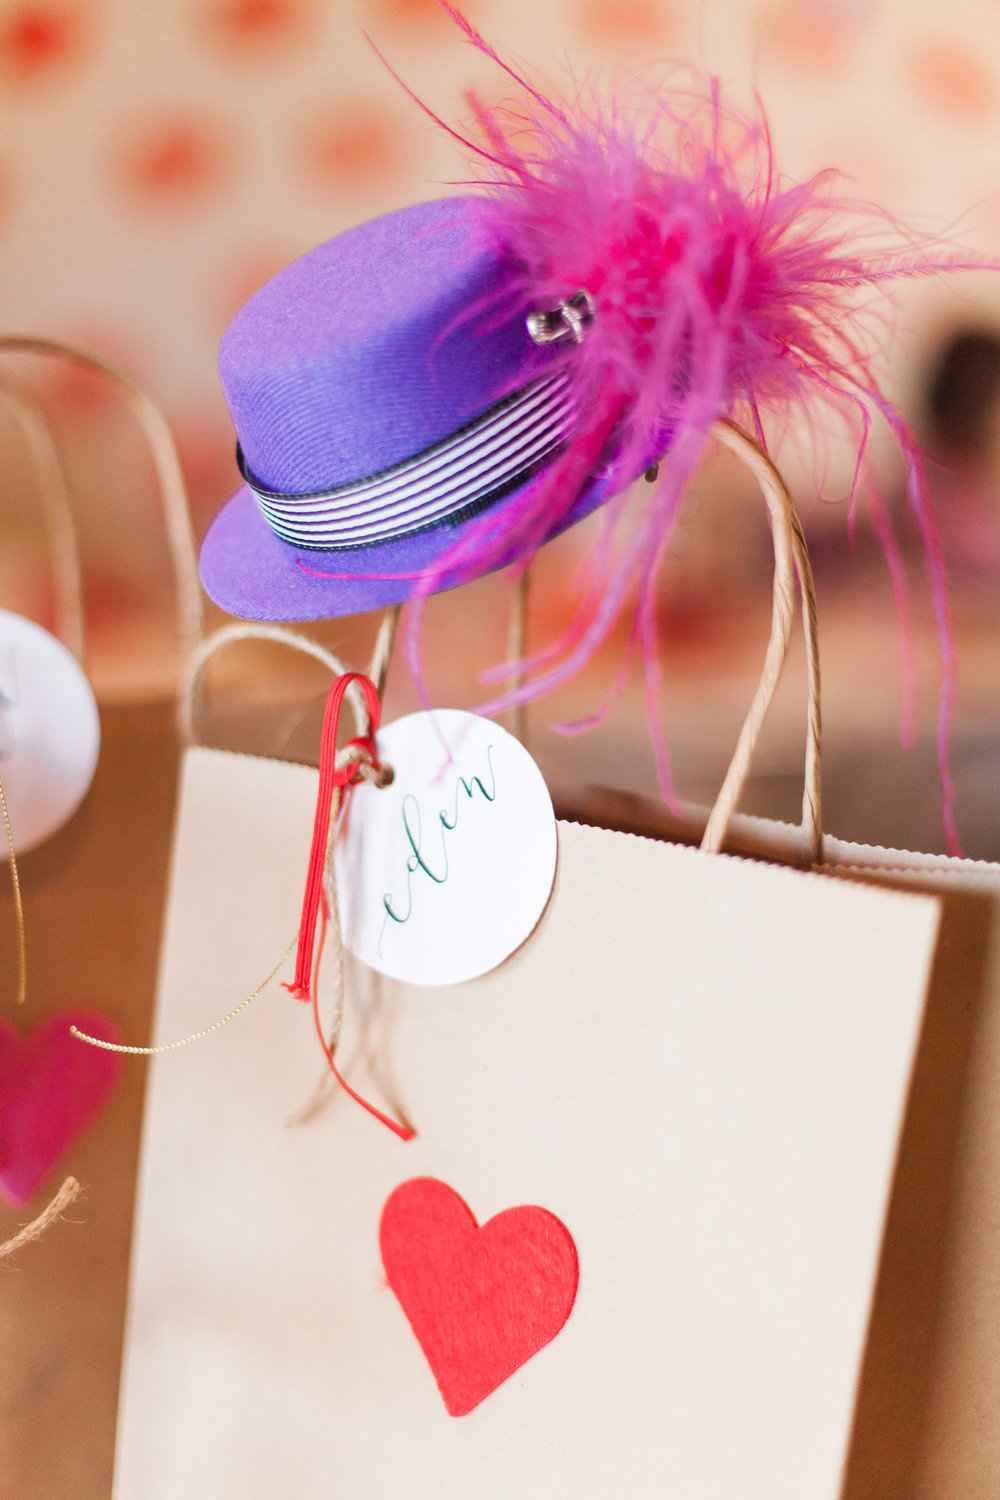 art-craft-valentines-day-party-Connie-Meinhardt-Photography-bab-purple-hat.jpg